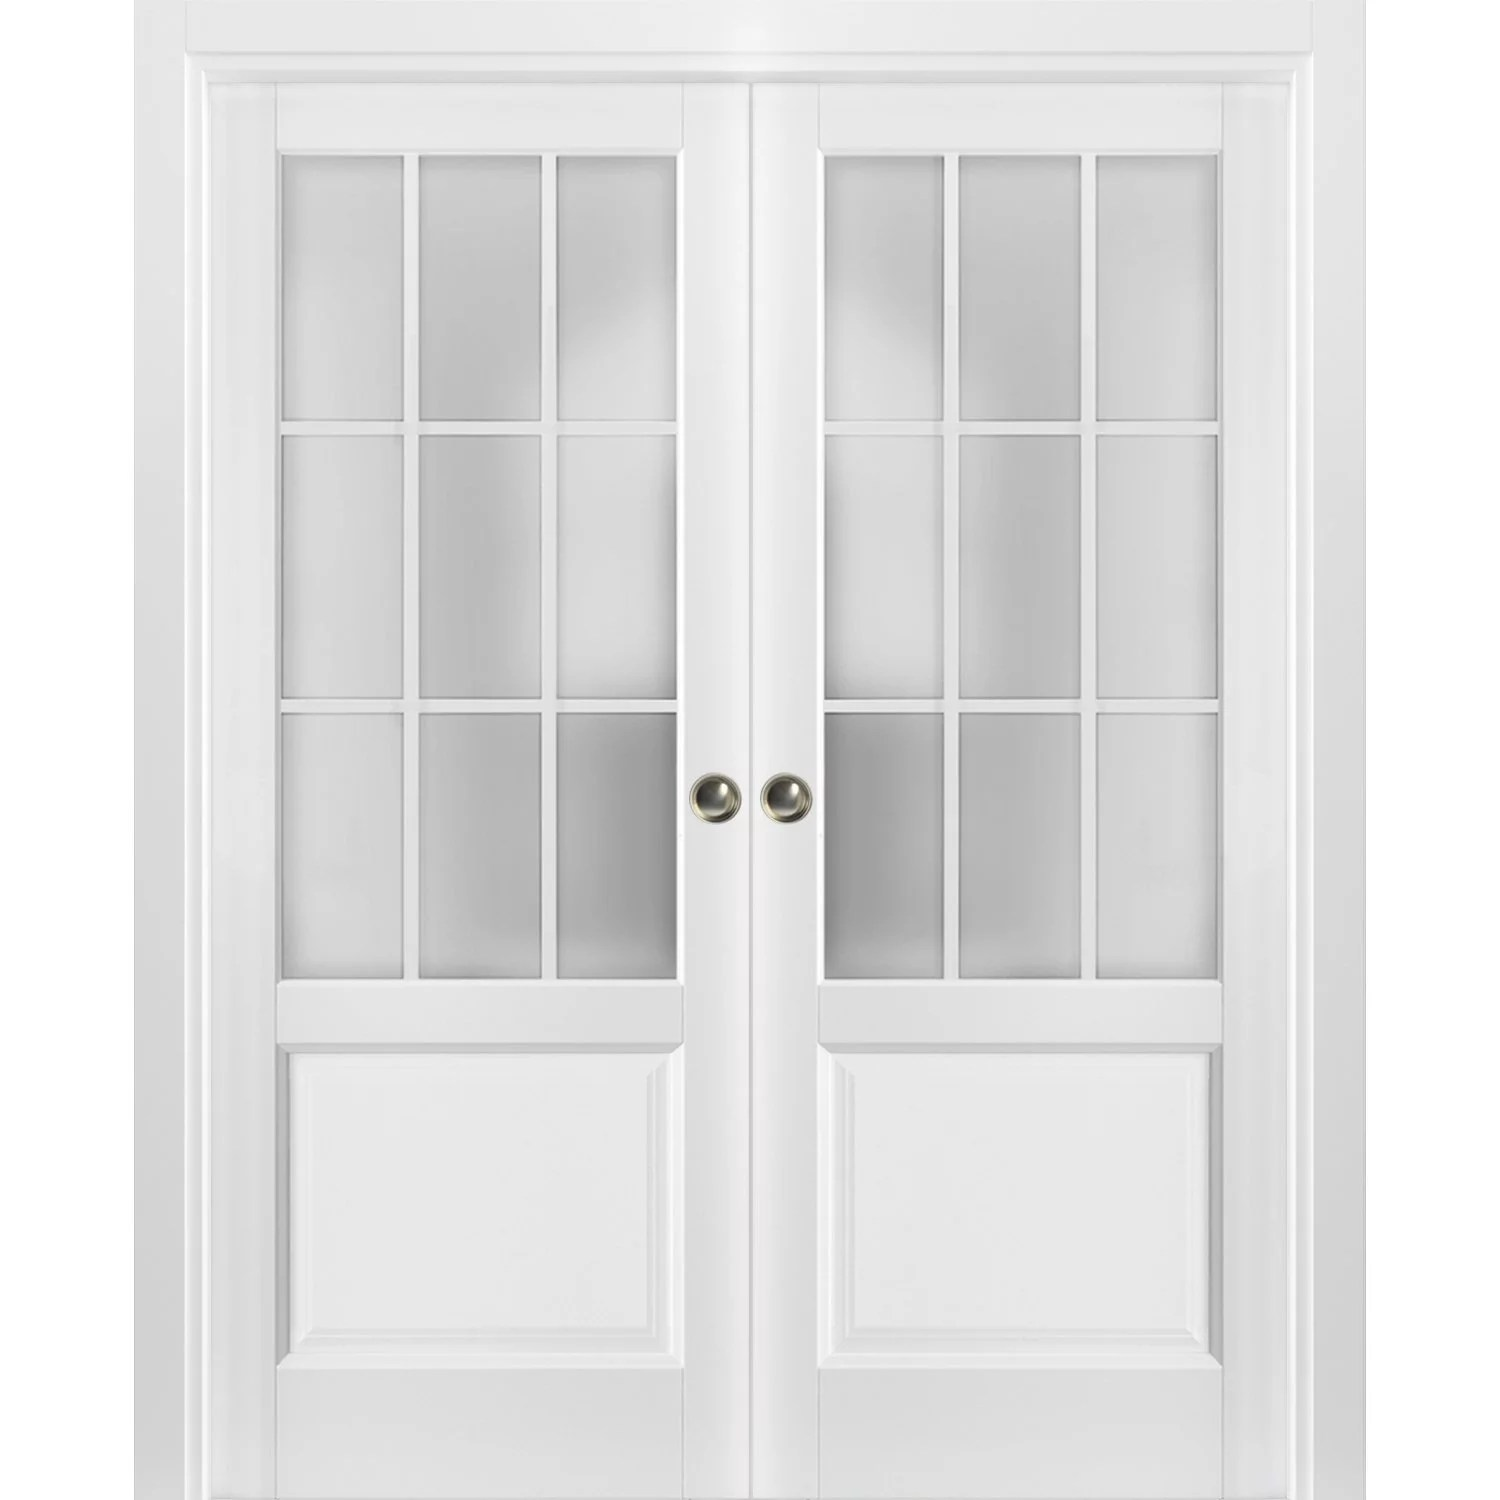 sliding french double pocket doors 60 x 80 inches frosted glass 9 lites walmart com